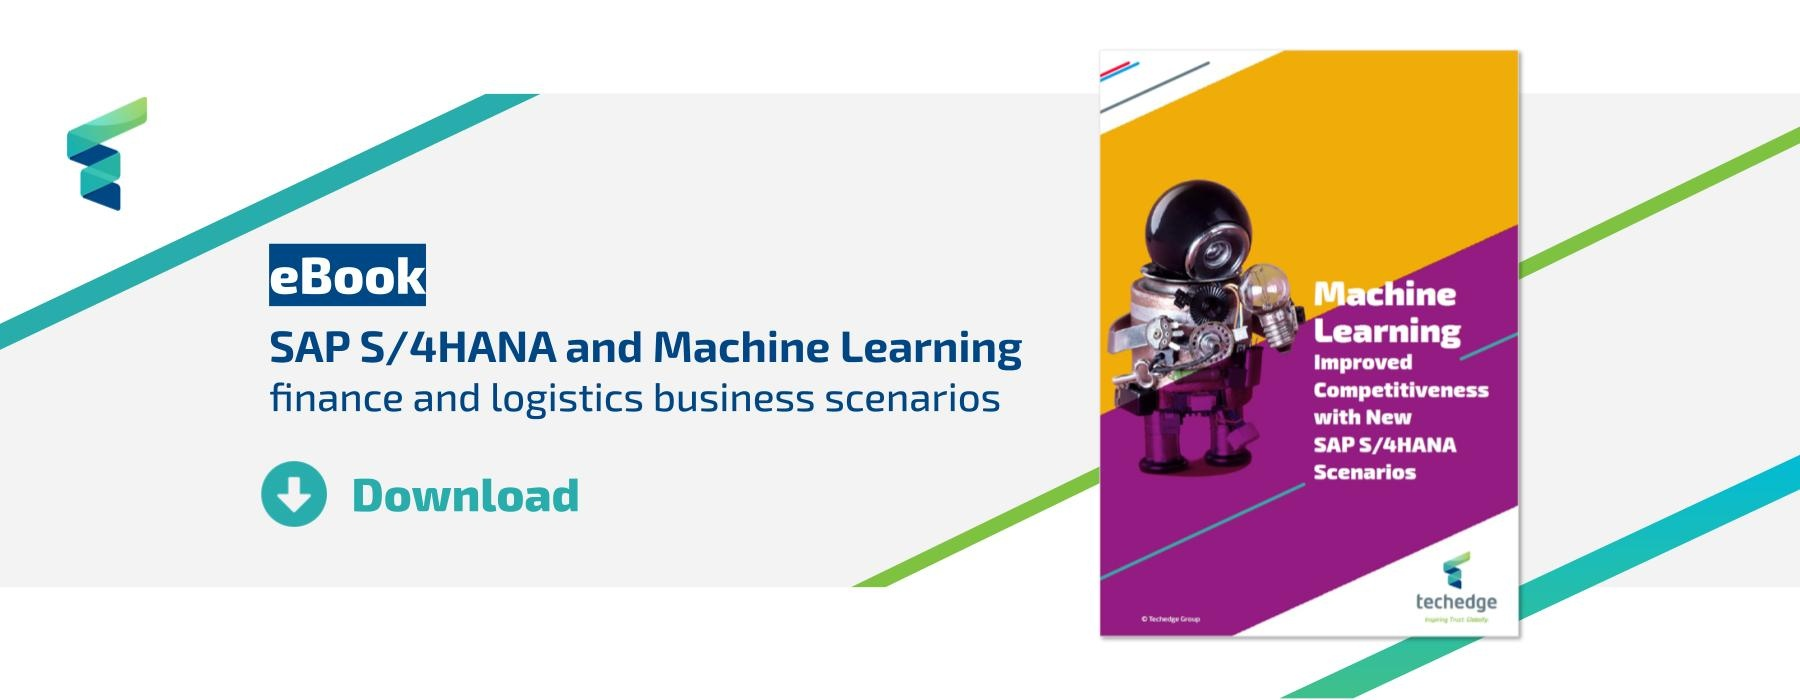 download the ebook on SAP S/4HANA and Machine Learning